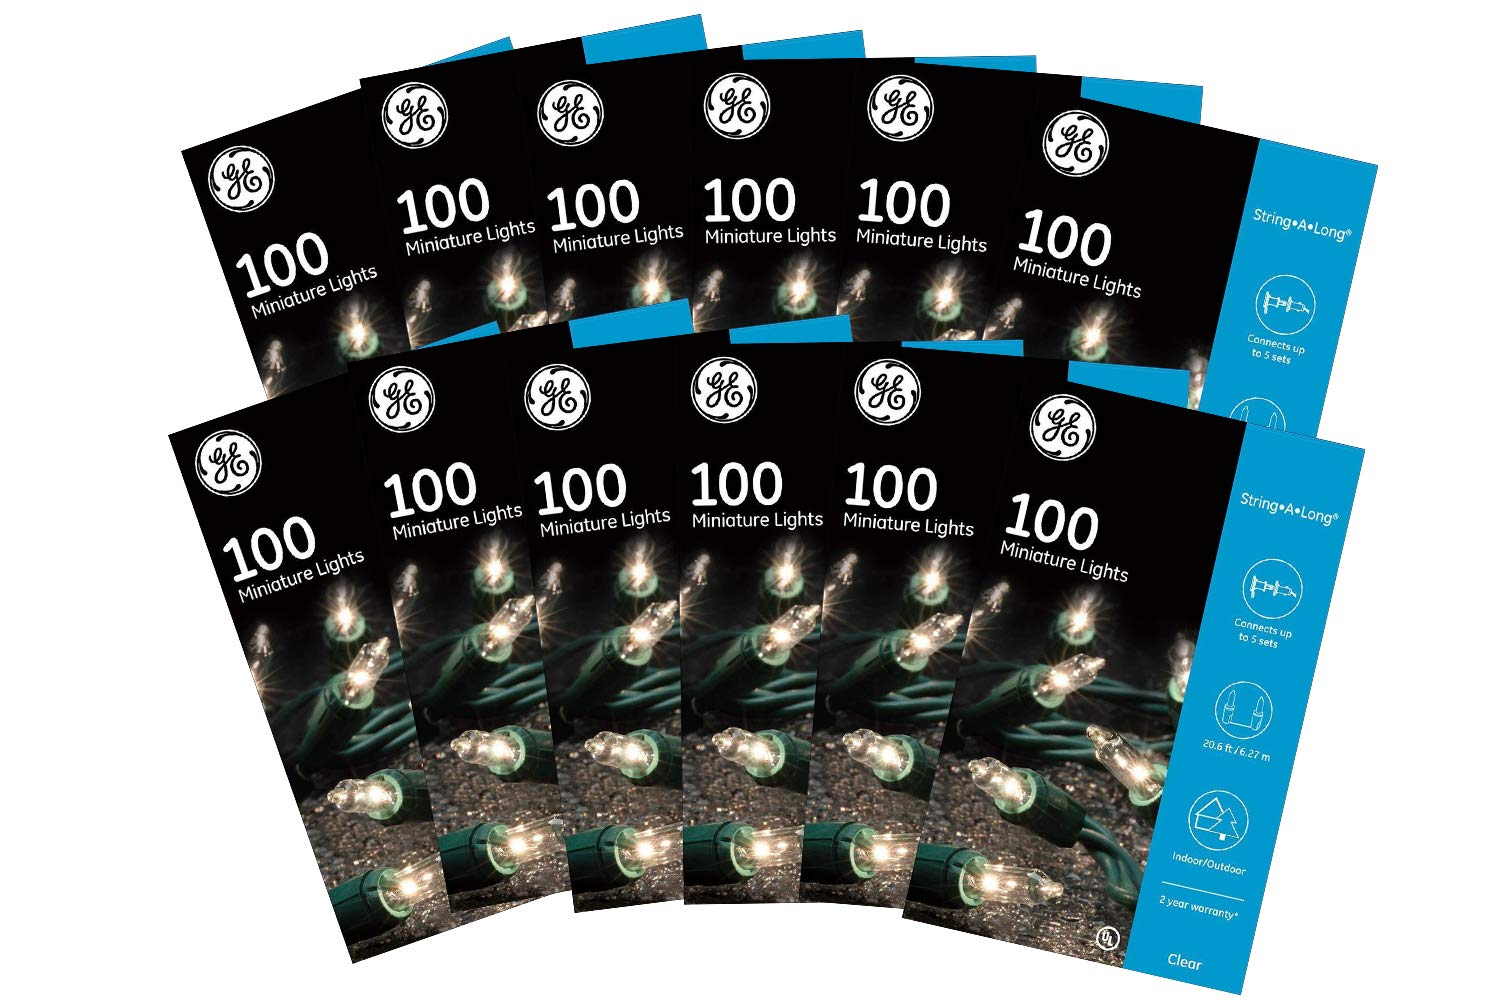 String Lights GE String A Long 100 Count Outdoor 12 Pack - Can Be Used for Indoor Also - Mini Clear White Holiday/Party Lights Set on Green Wire (12 Pack)